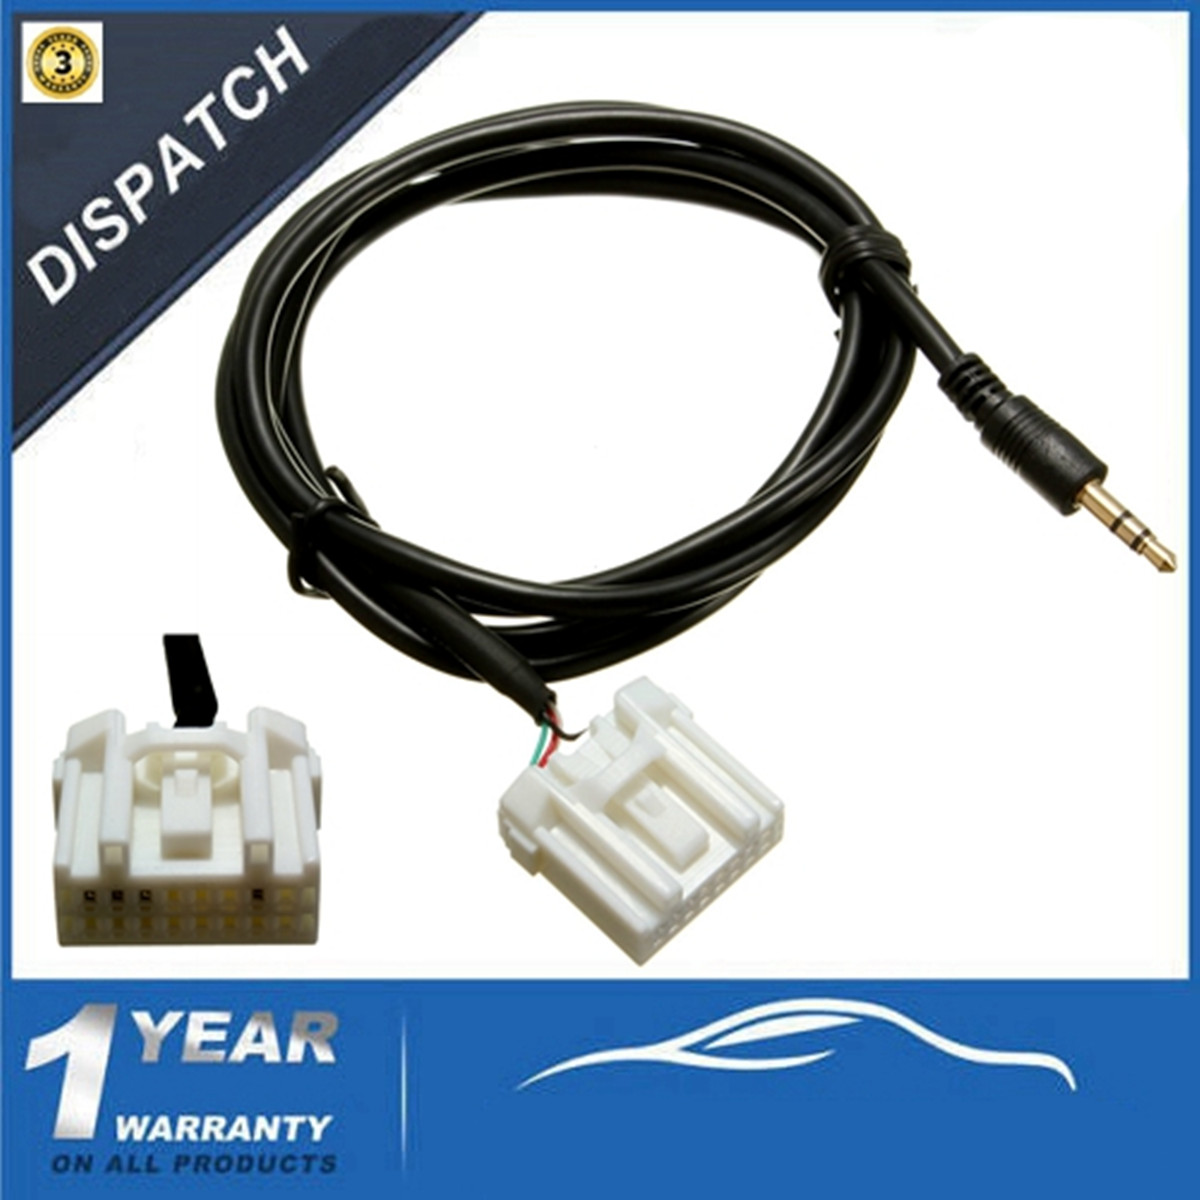 AUX 3.5mm Audio Cable Interface Adapter Lead for MAZDA 2 3 5 6 MX 5 ...